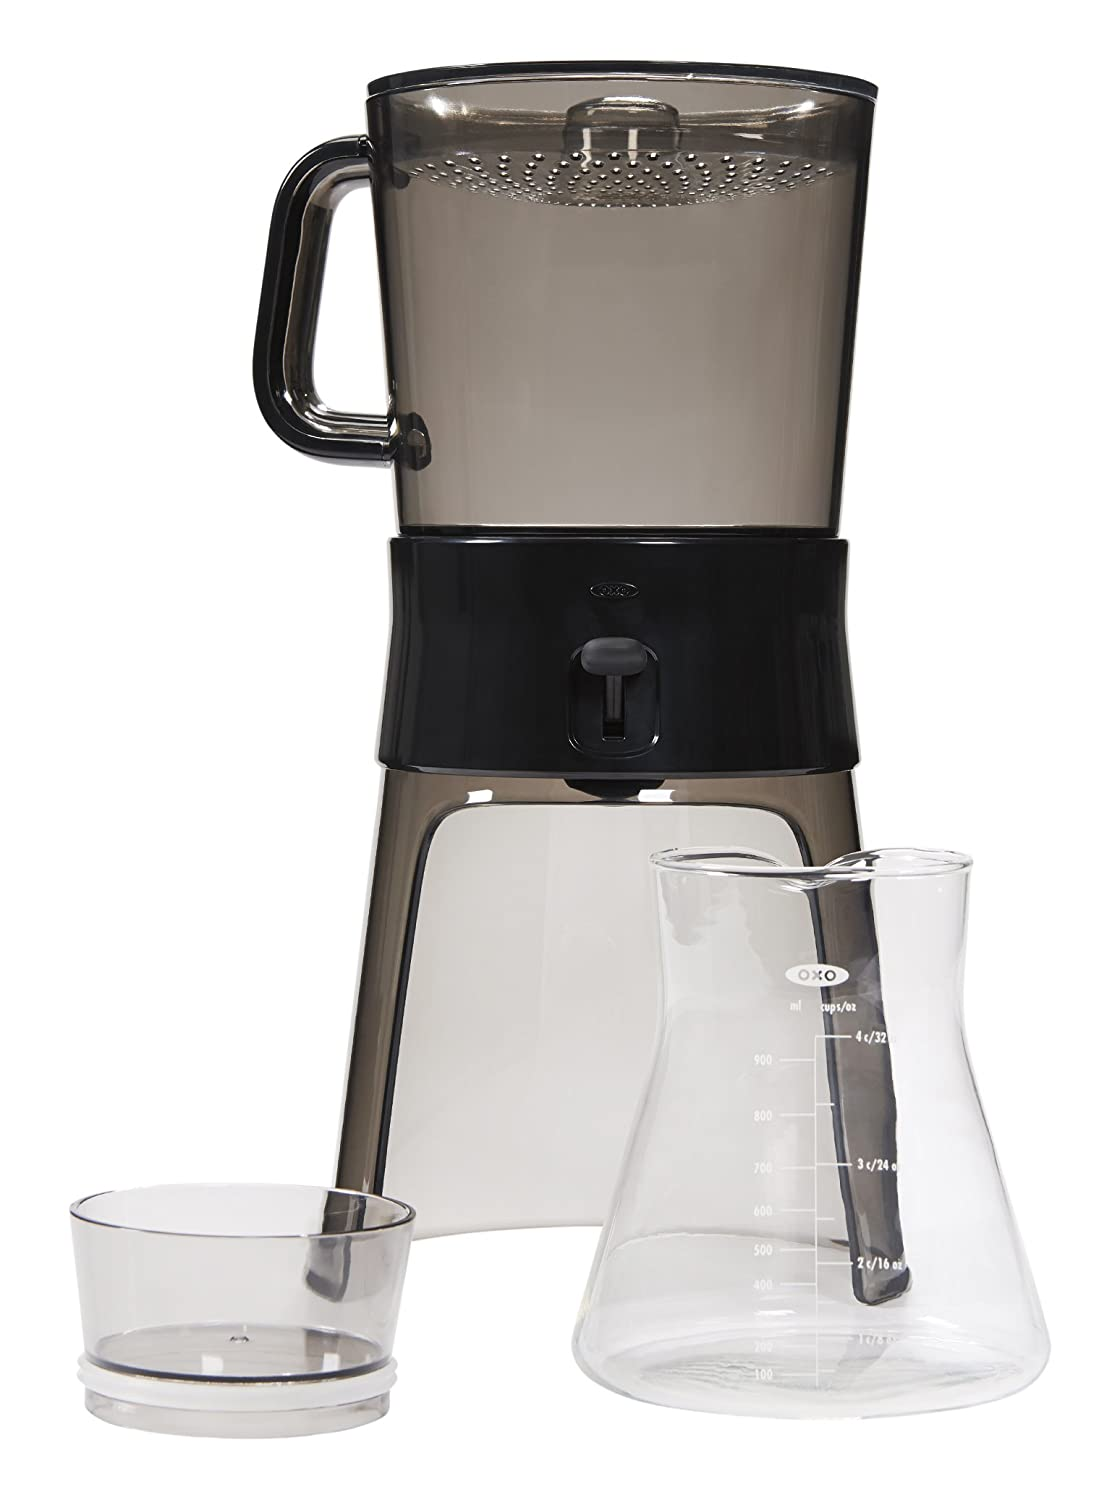 Best coffee maker under 100